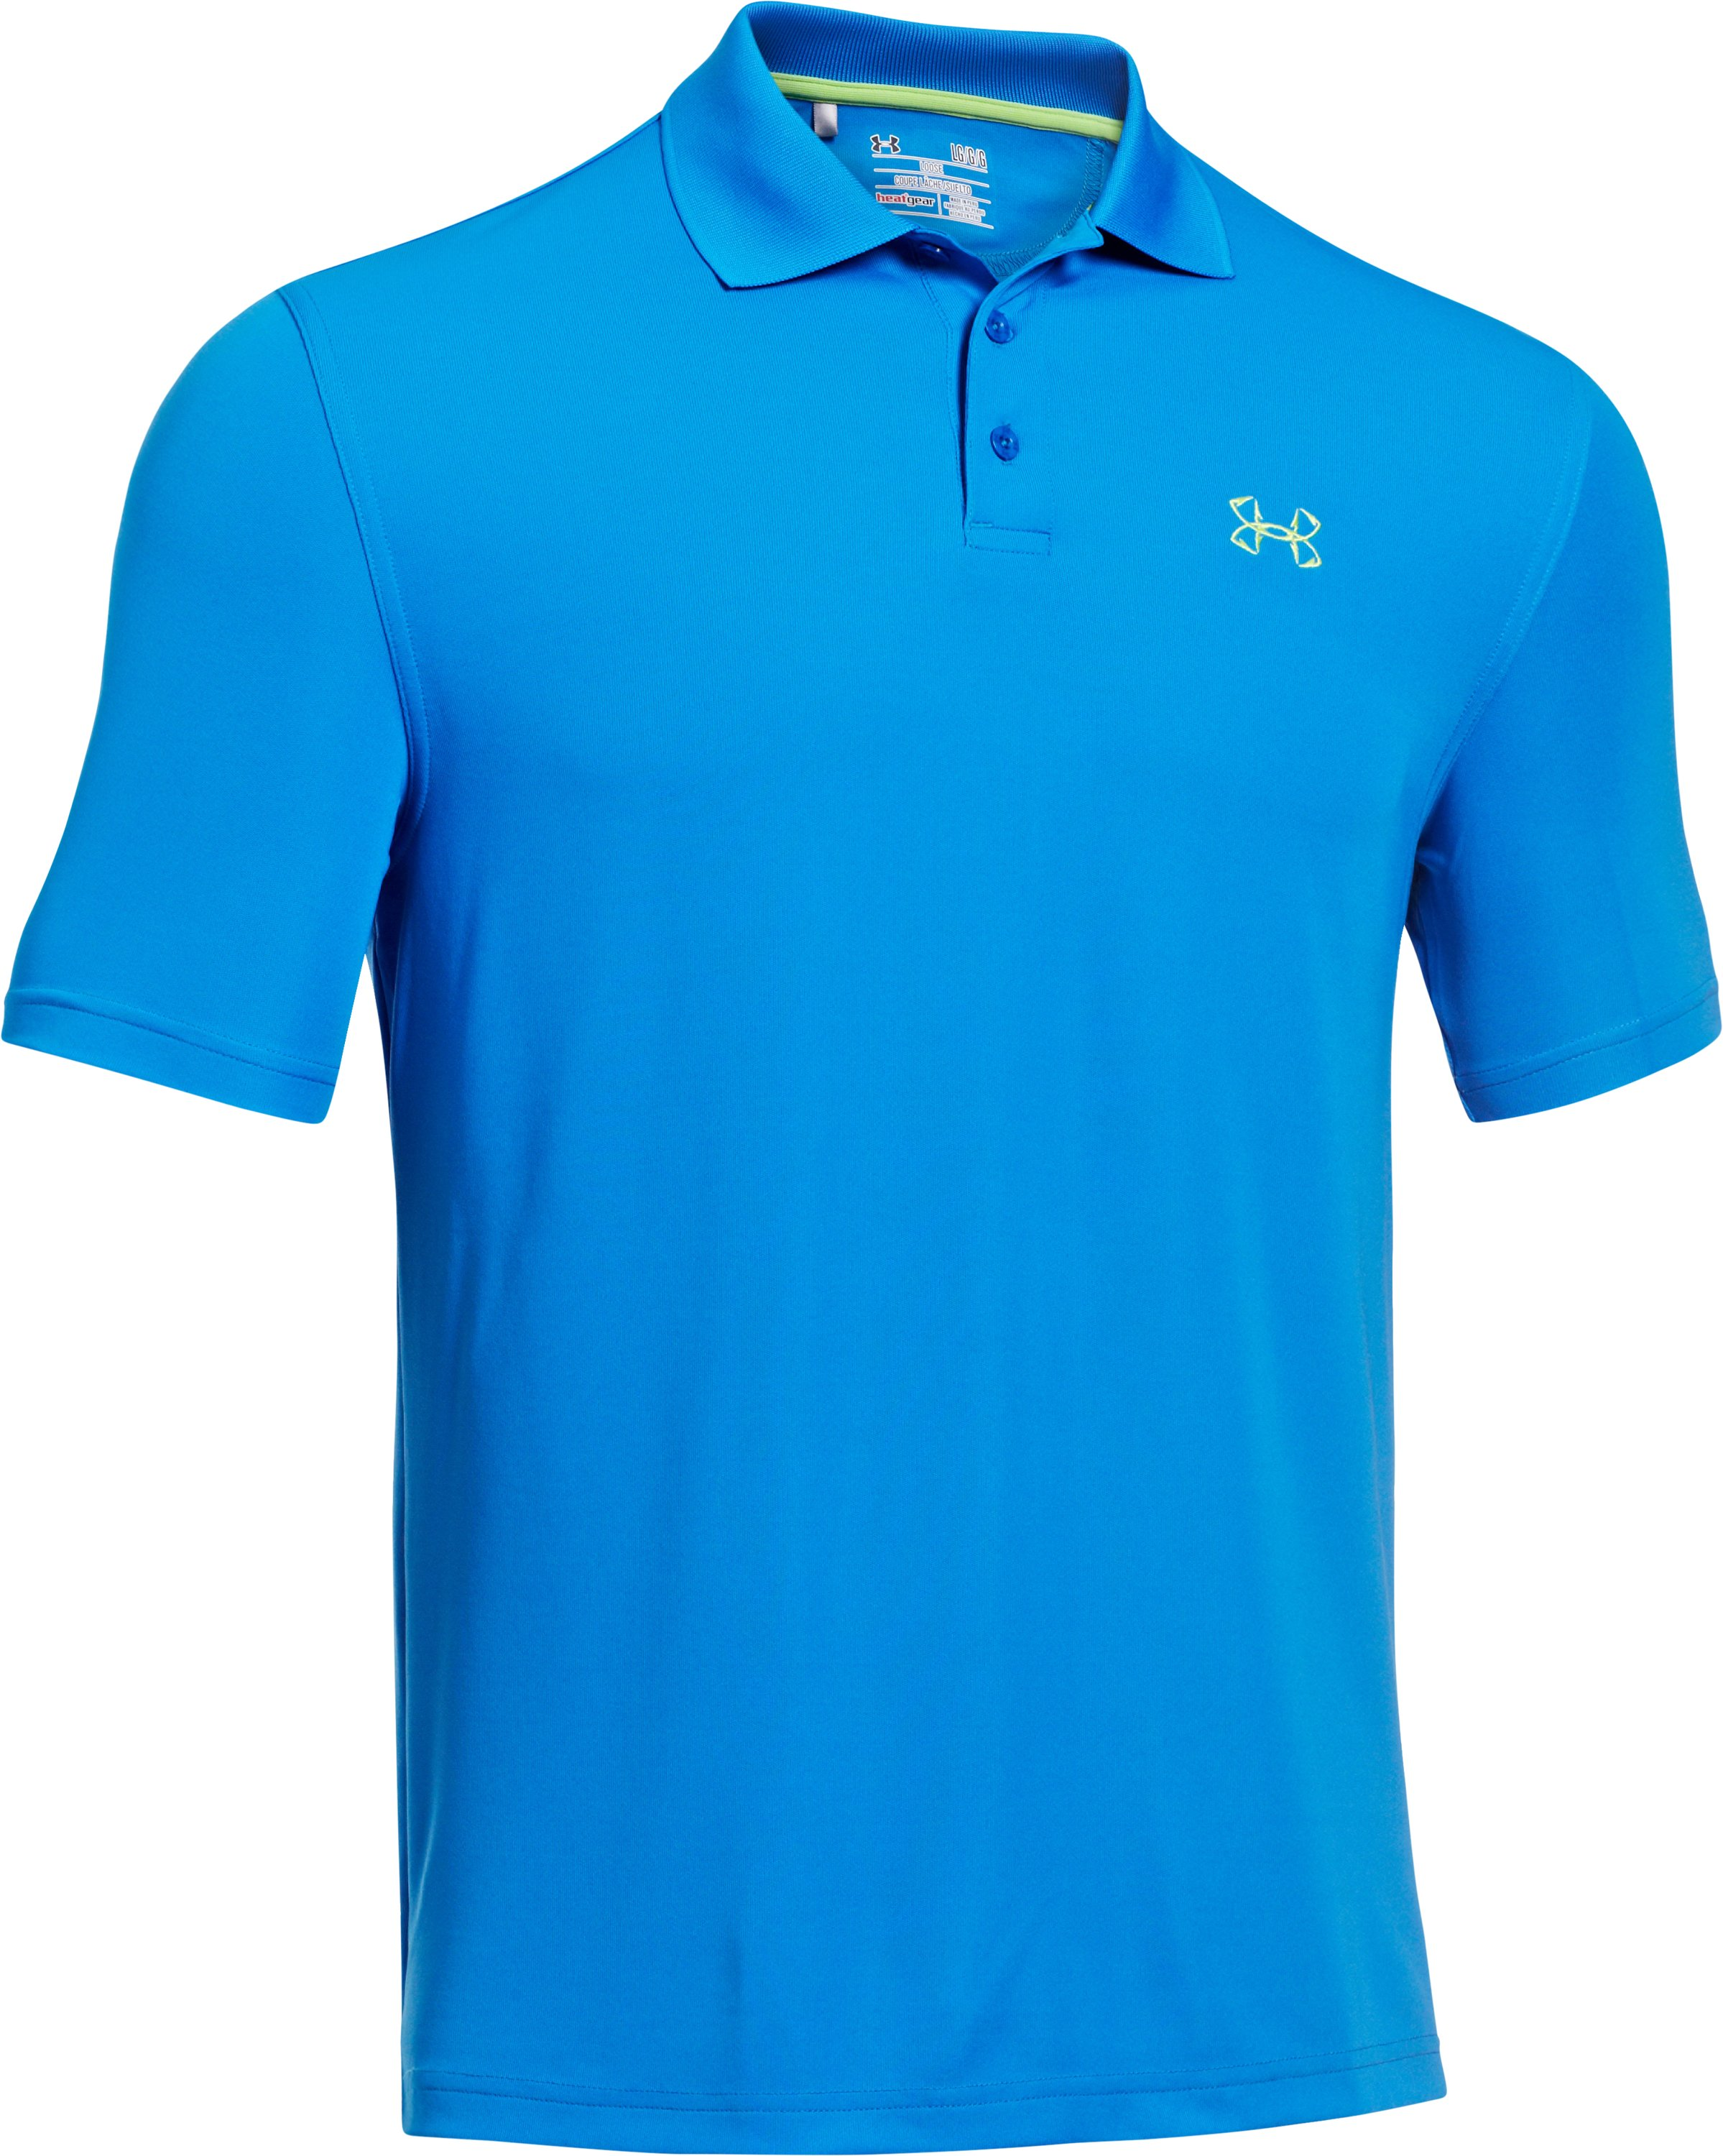 Men's UA Performance Fish Hook Polo, St. Tropez